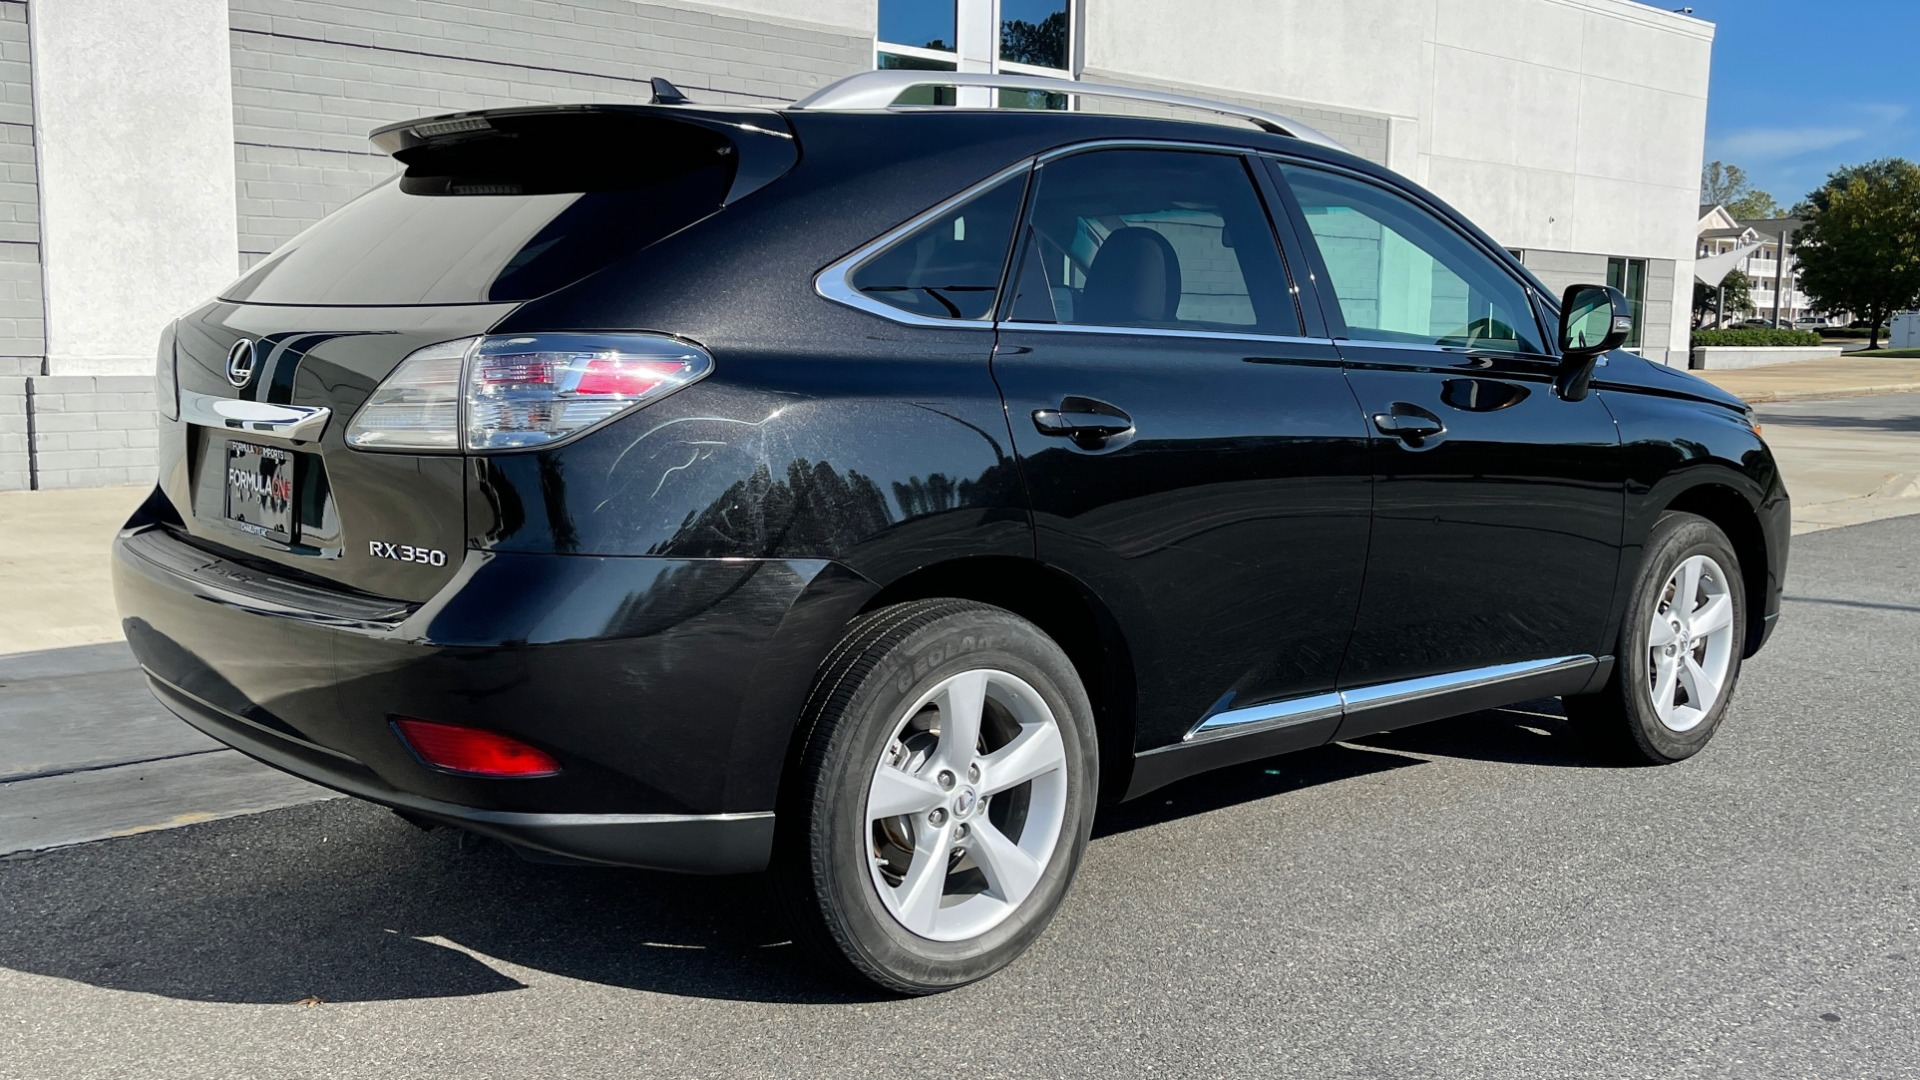 Used 2011 Lexus RX 350 PREMIUM / TOWING PREP PKG / VENTILATED STS / SUNROOF / REARVIEW for sale Sold at Formula Imports in Charlotte NC 28227 7